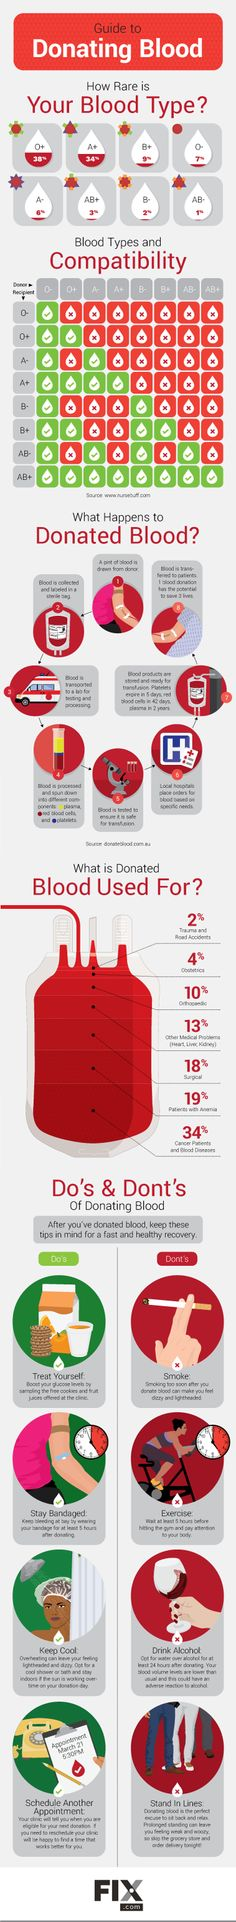 What to do Before and After Donating Blood | Fix.com